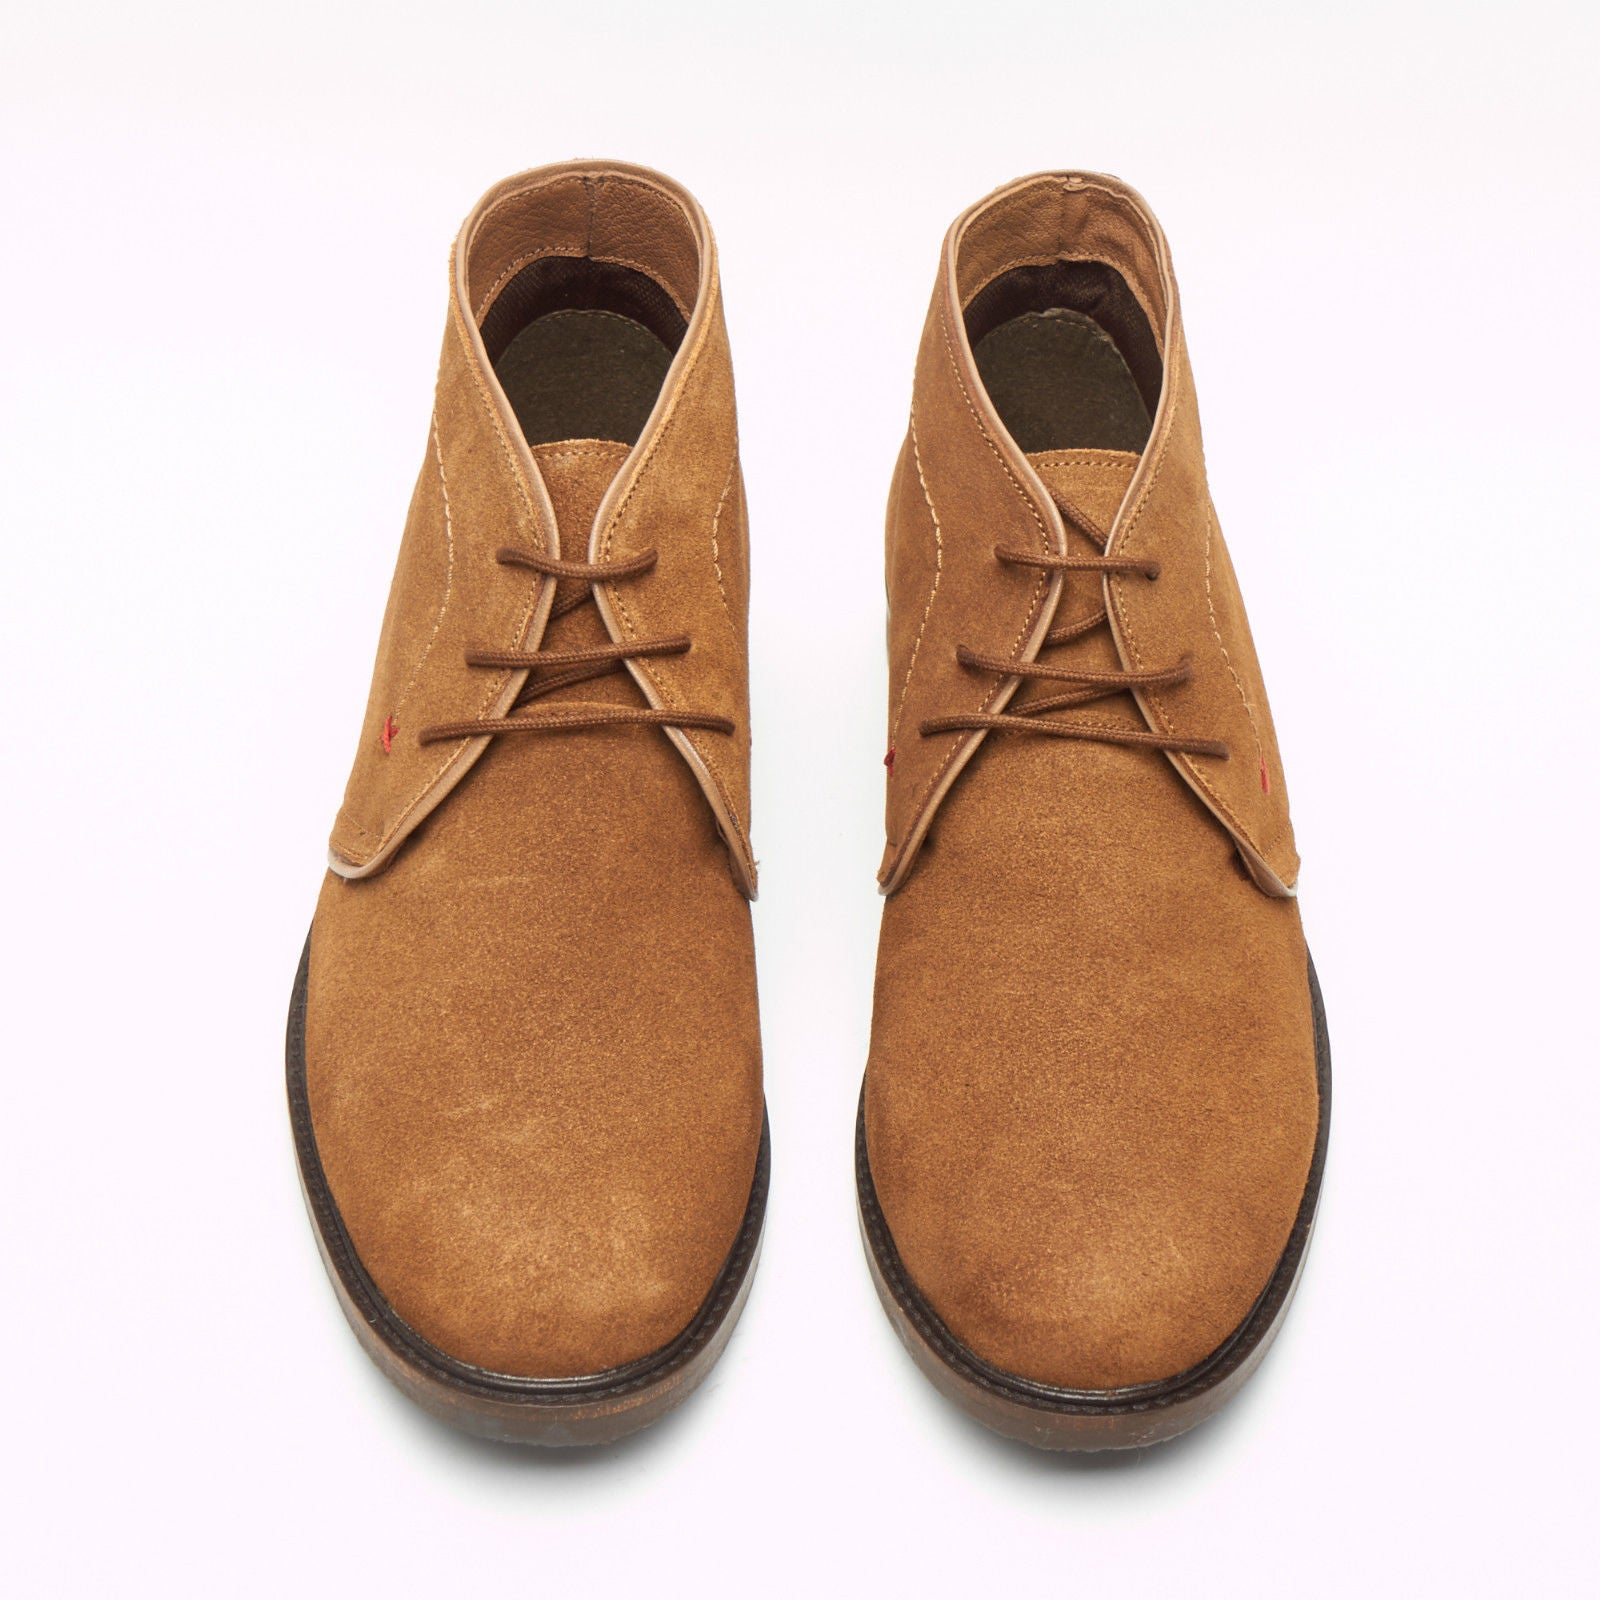 d4f27669c2574 Mens Suede Ankle Boots - SF-251-Suede Brown – Lucini Shoes